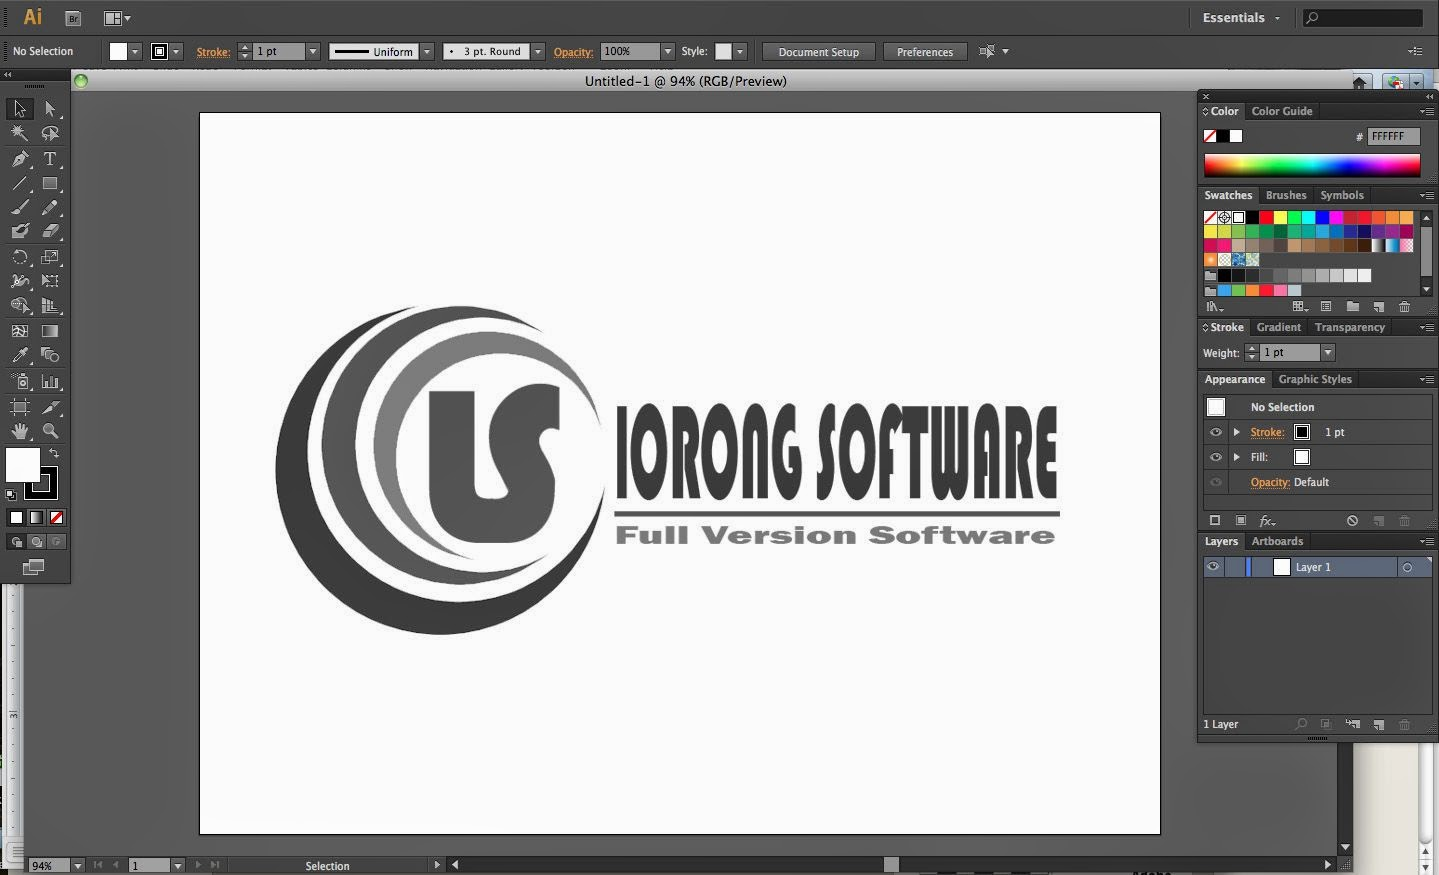 Adobe-Illustrator-CS6-16-0-3-Portable-Full-Version